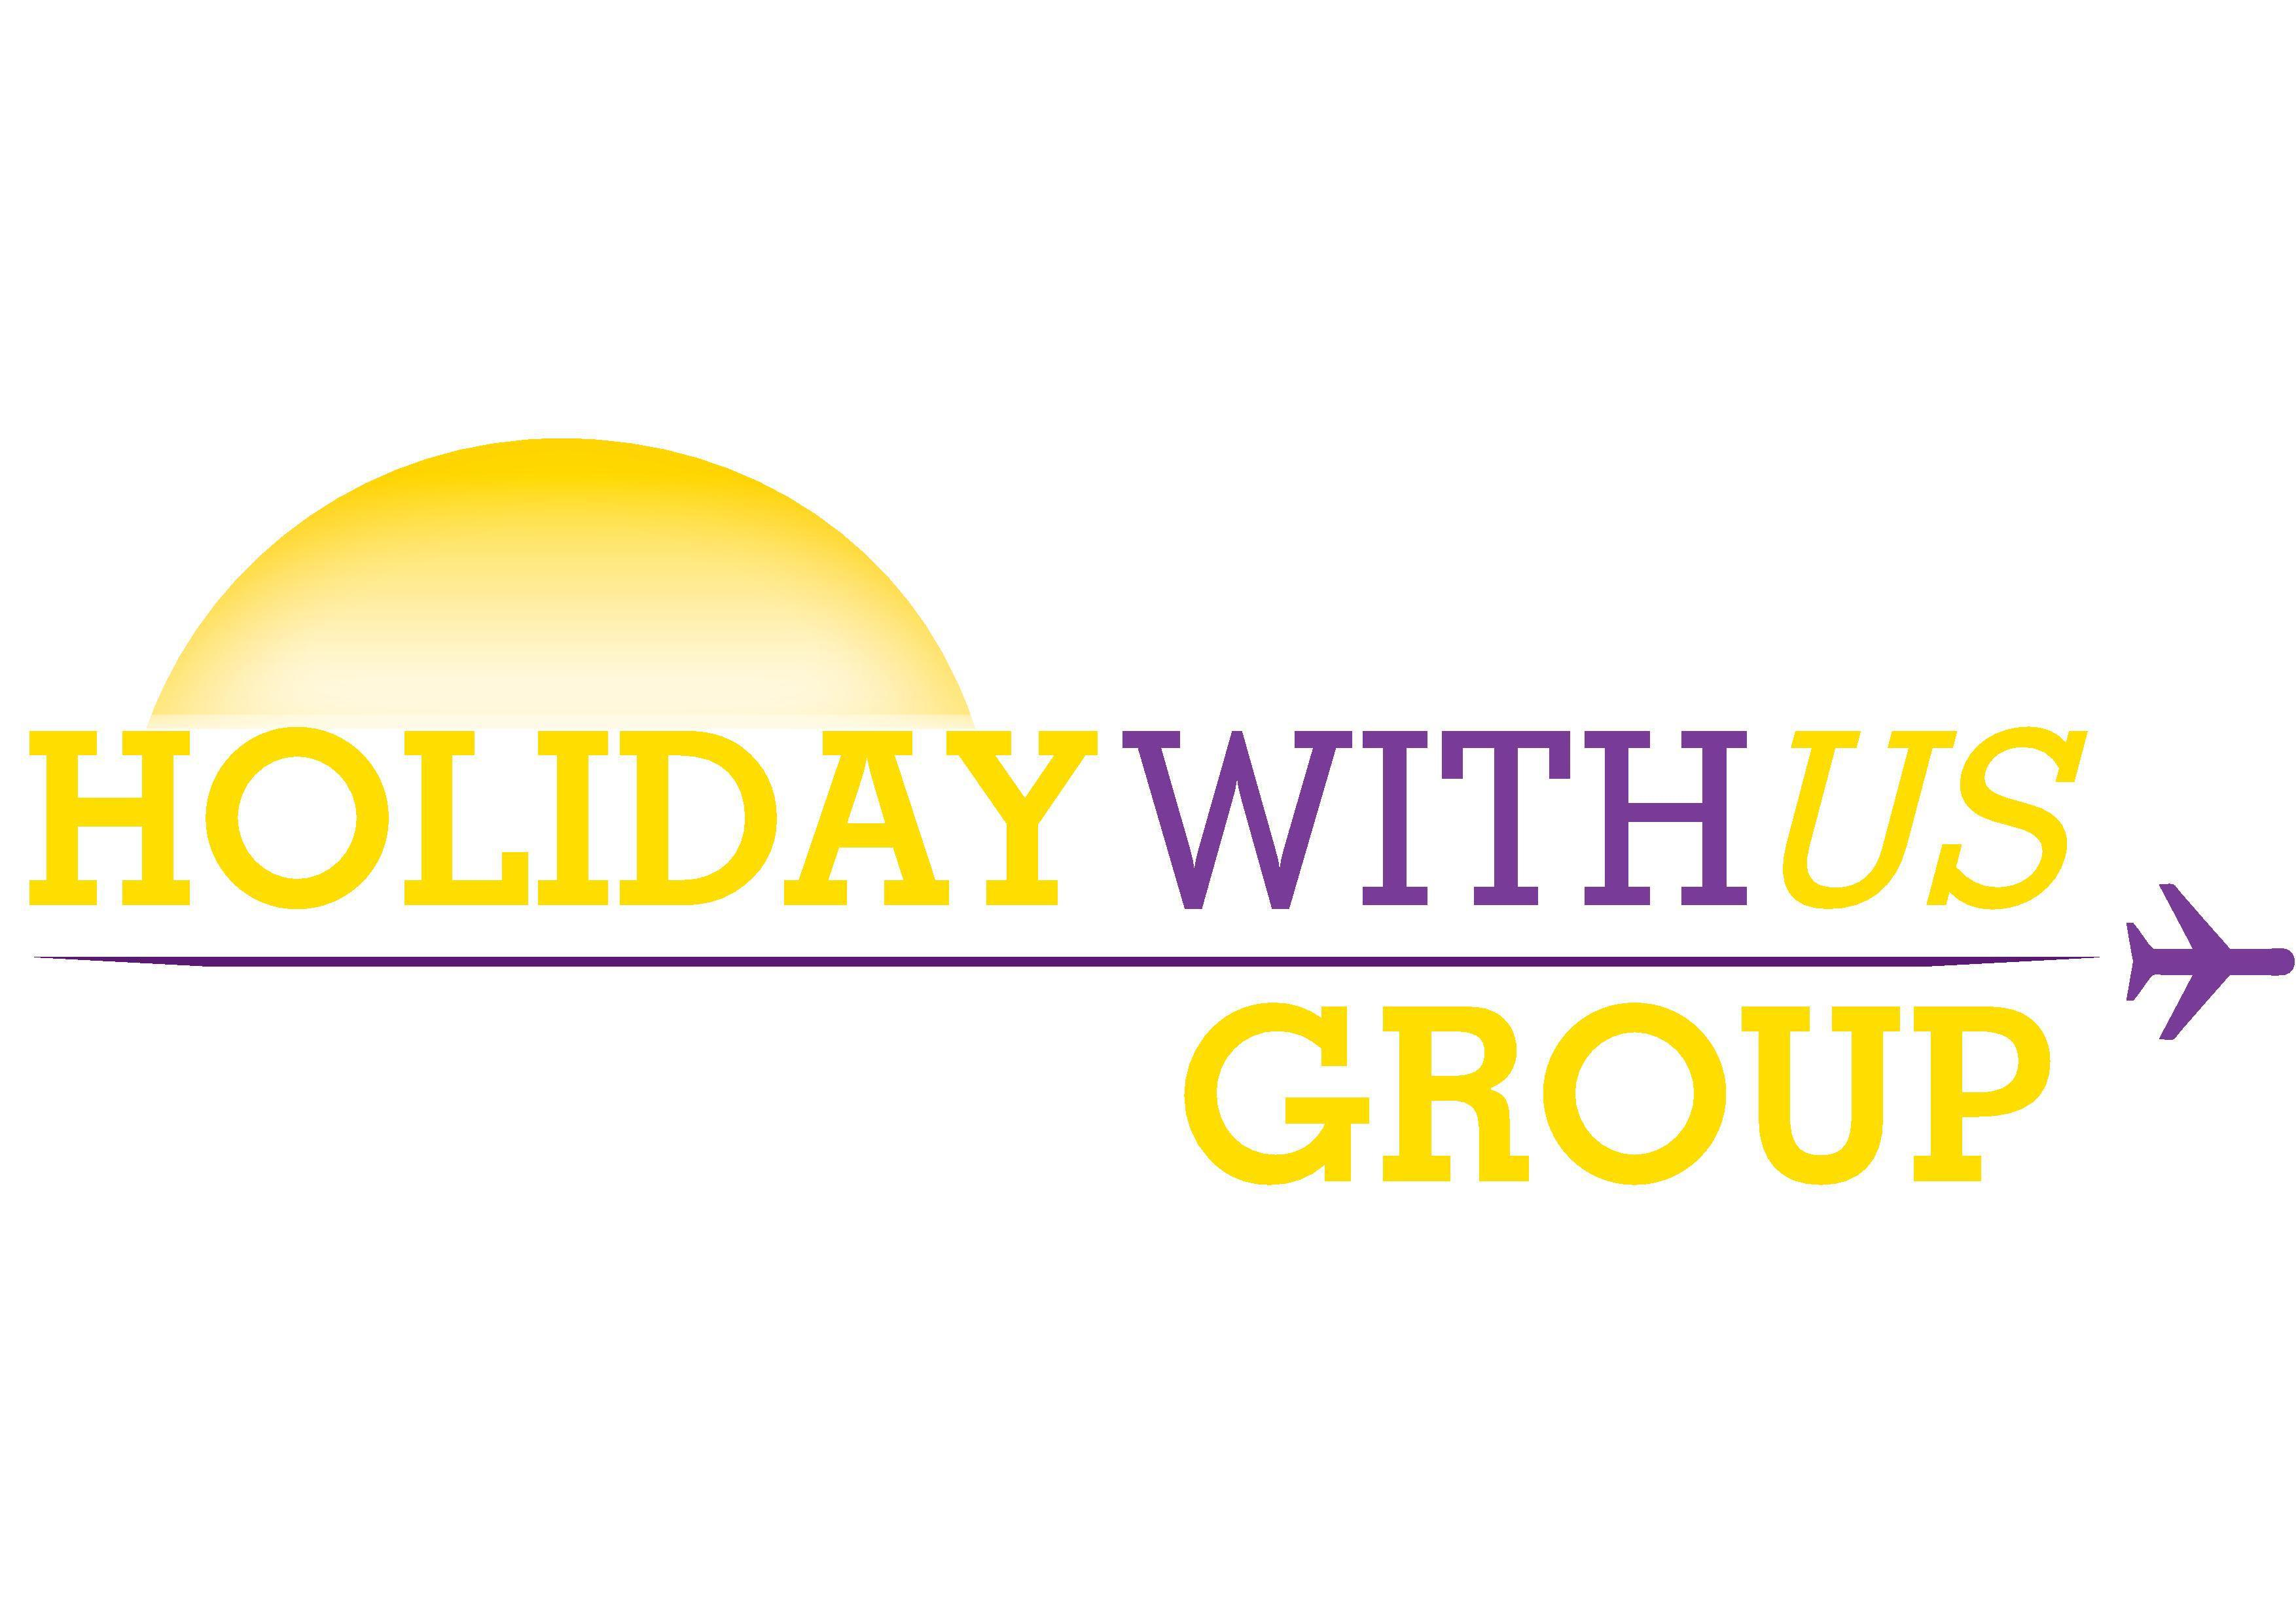 Cheap Holidays - The Holiday With Us Group